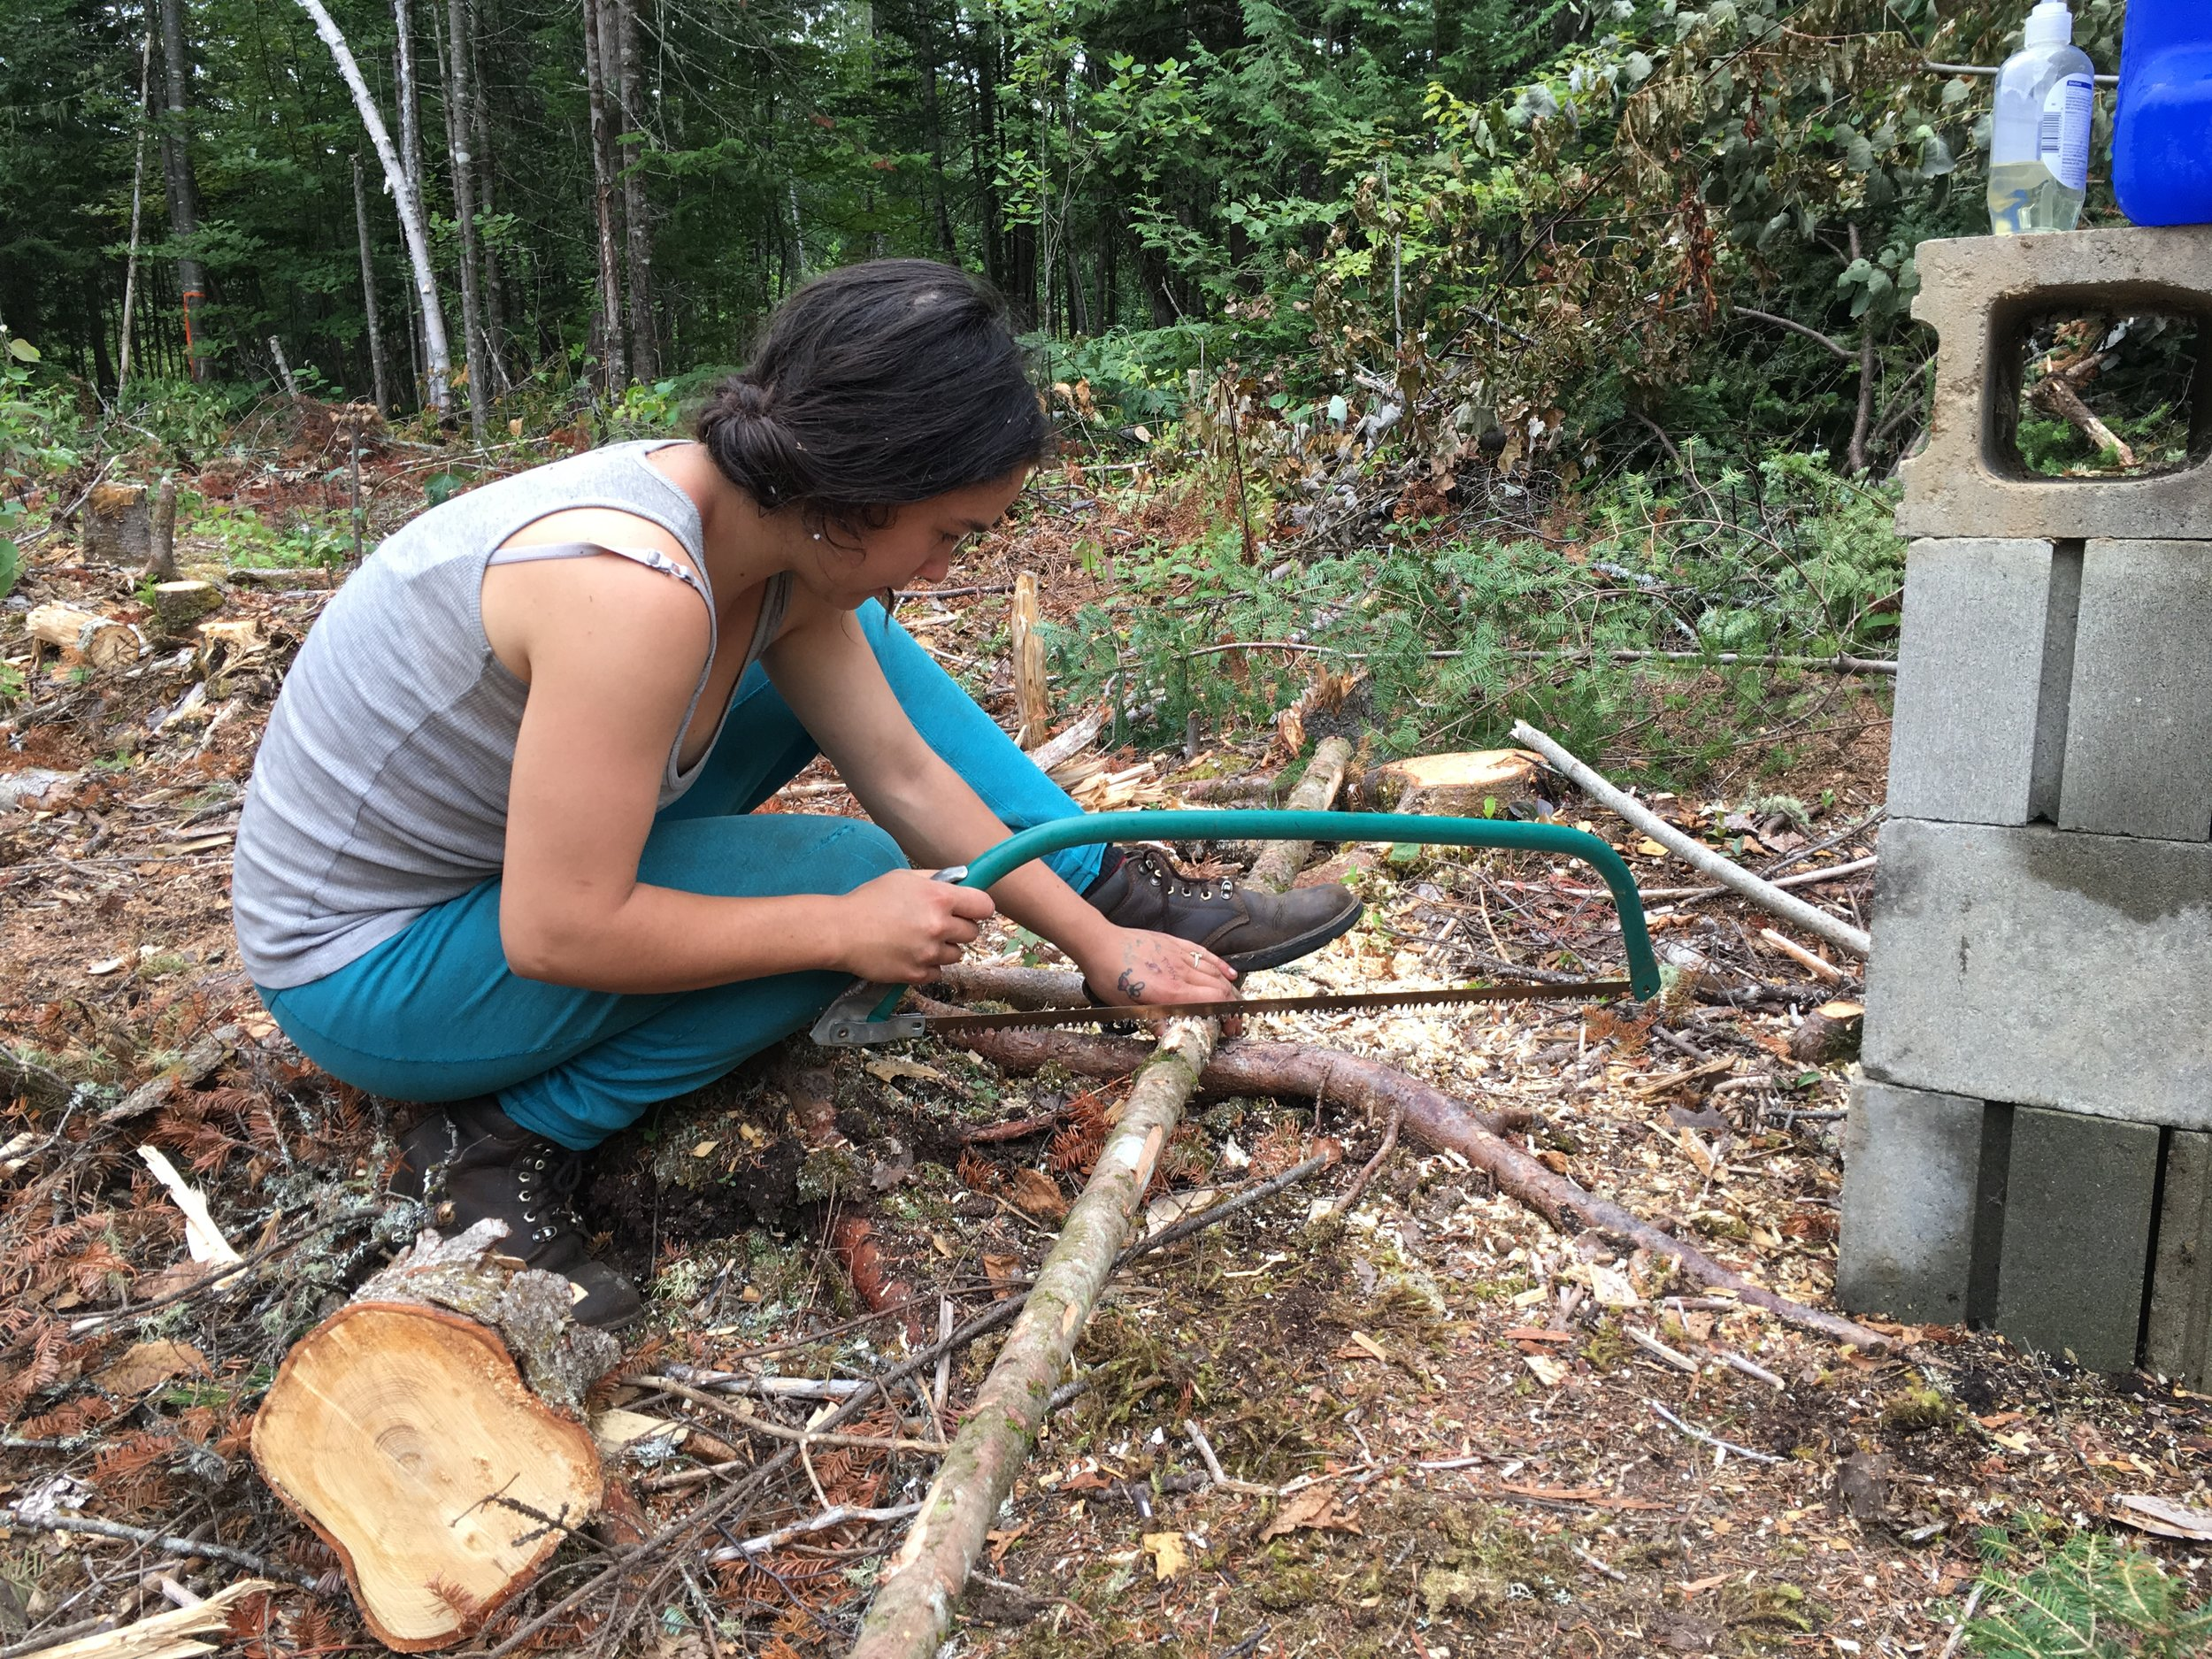 Molly uses a hand saw to carve an X in a pine trunk to make a pot hanger.